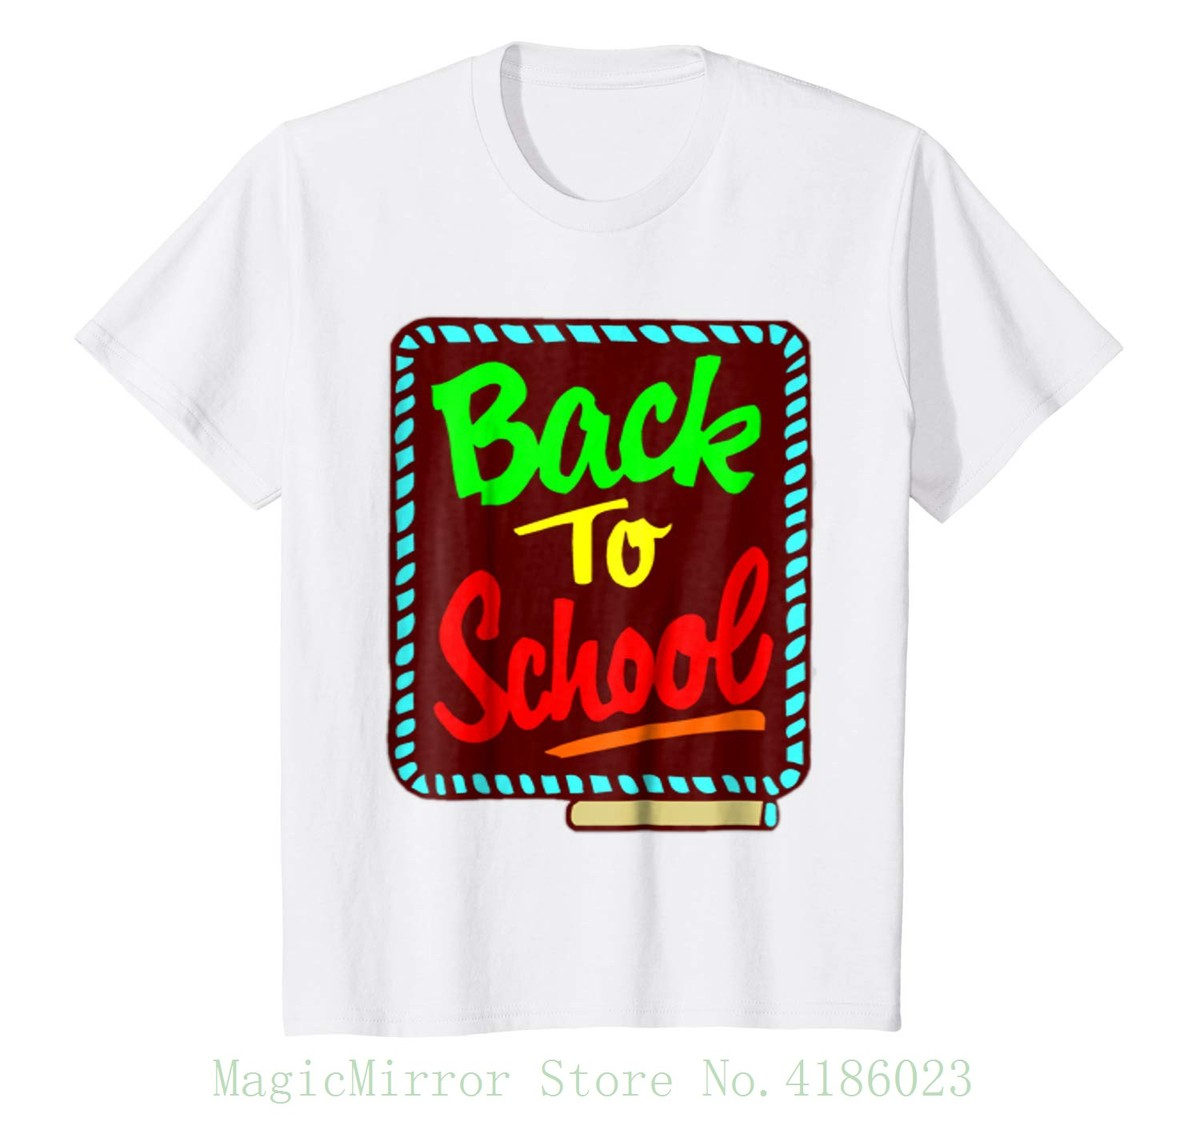 Big W School Shirts Kids Back To School Shirt Summer Short Sleeve Shirts Tops S 3xl Big Size Cotton Tees Free Shipping